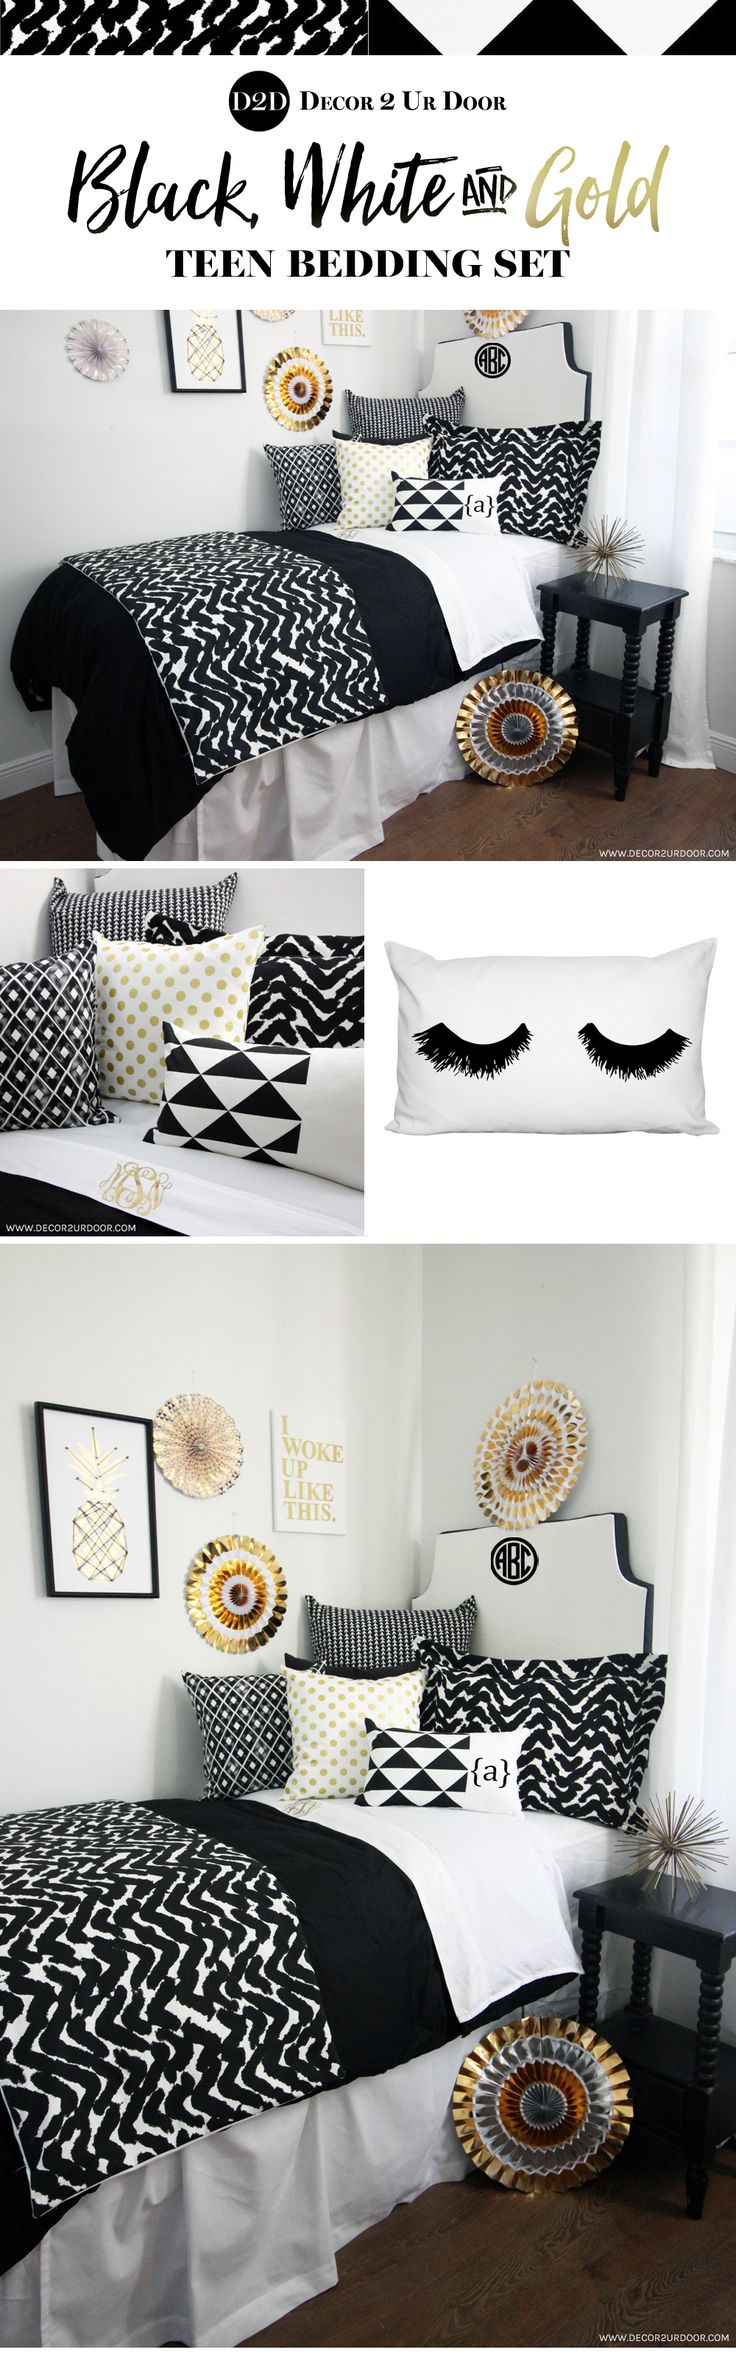 Bold, black, and beautiful. This black and white (and gold!) teen girl bedding set screams minimalist magnificence. These brand new fabrics feature geometric shapes, marker inspired prints, and textured furs. We're going back to basics here. Add a pop of gold in monograms + ourgold polka dot pillowfor a bit of glitz and glam. This black and white marker teen girl bedding will be the absolute rage.